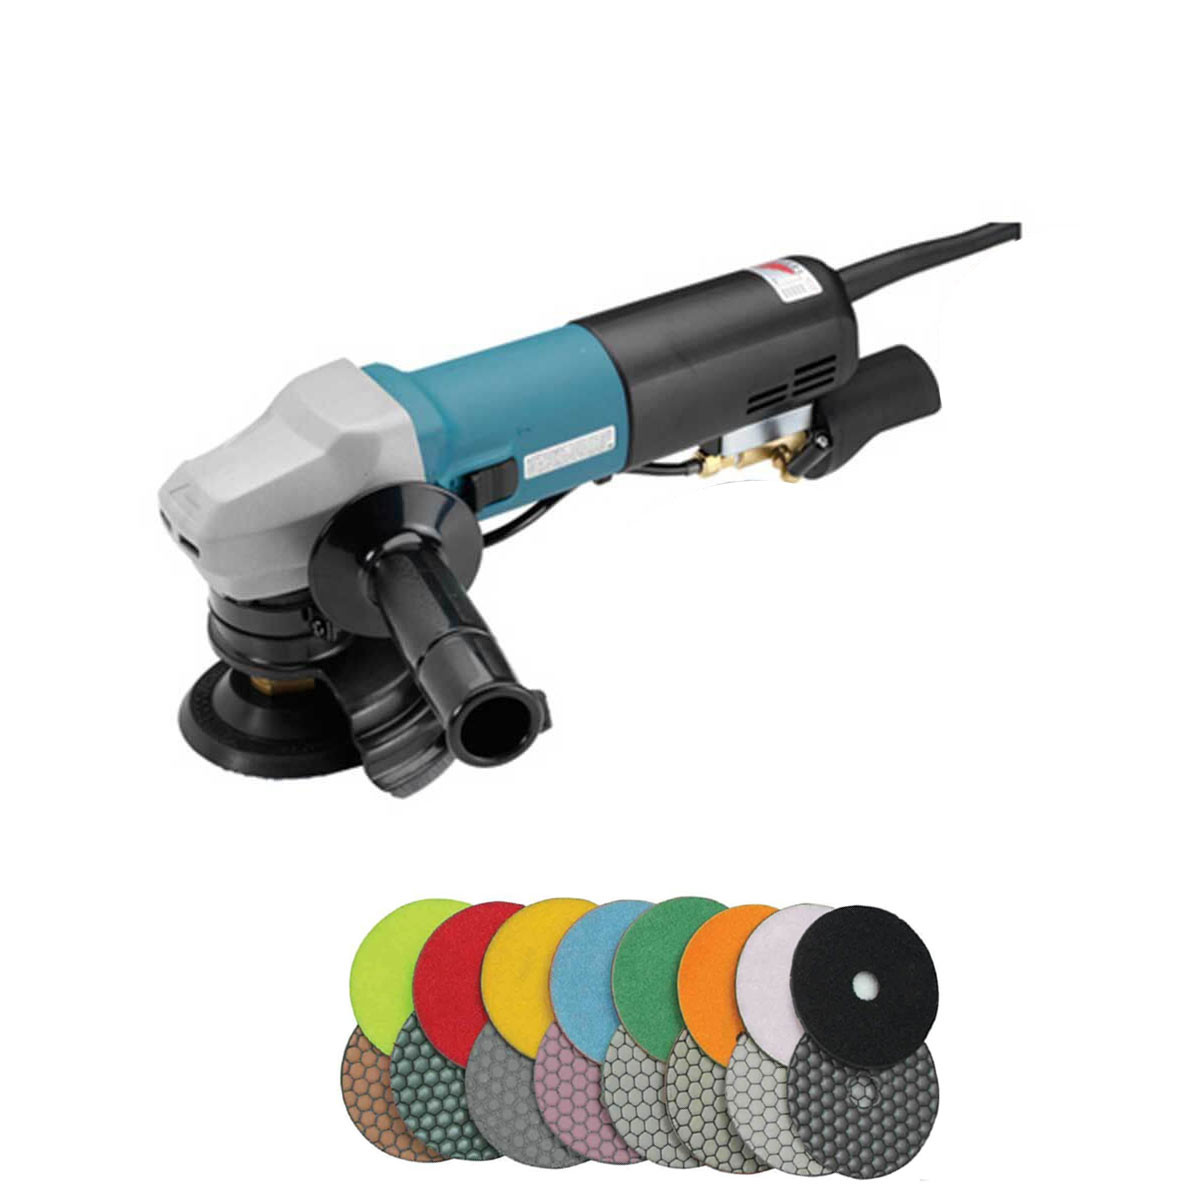 Makita Variable Speed Wet Polisher Contractors Direct